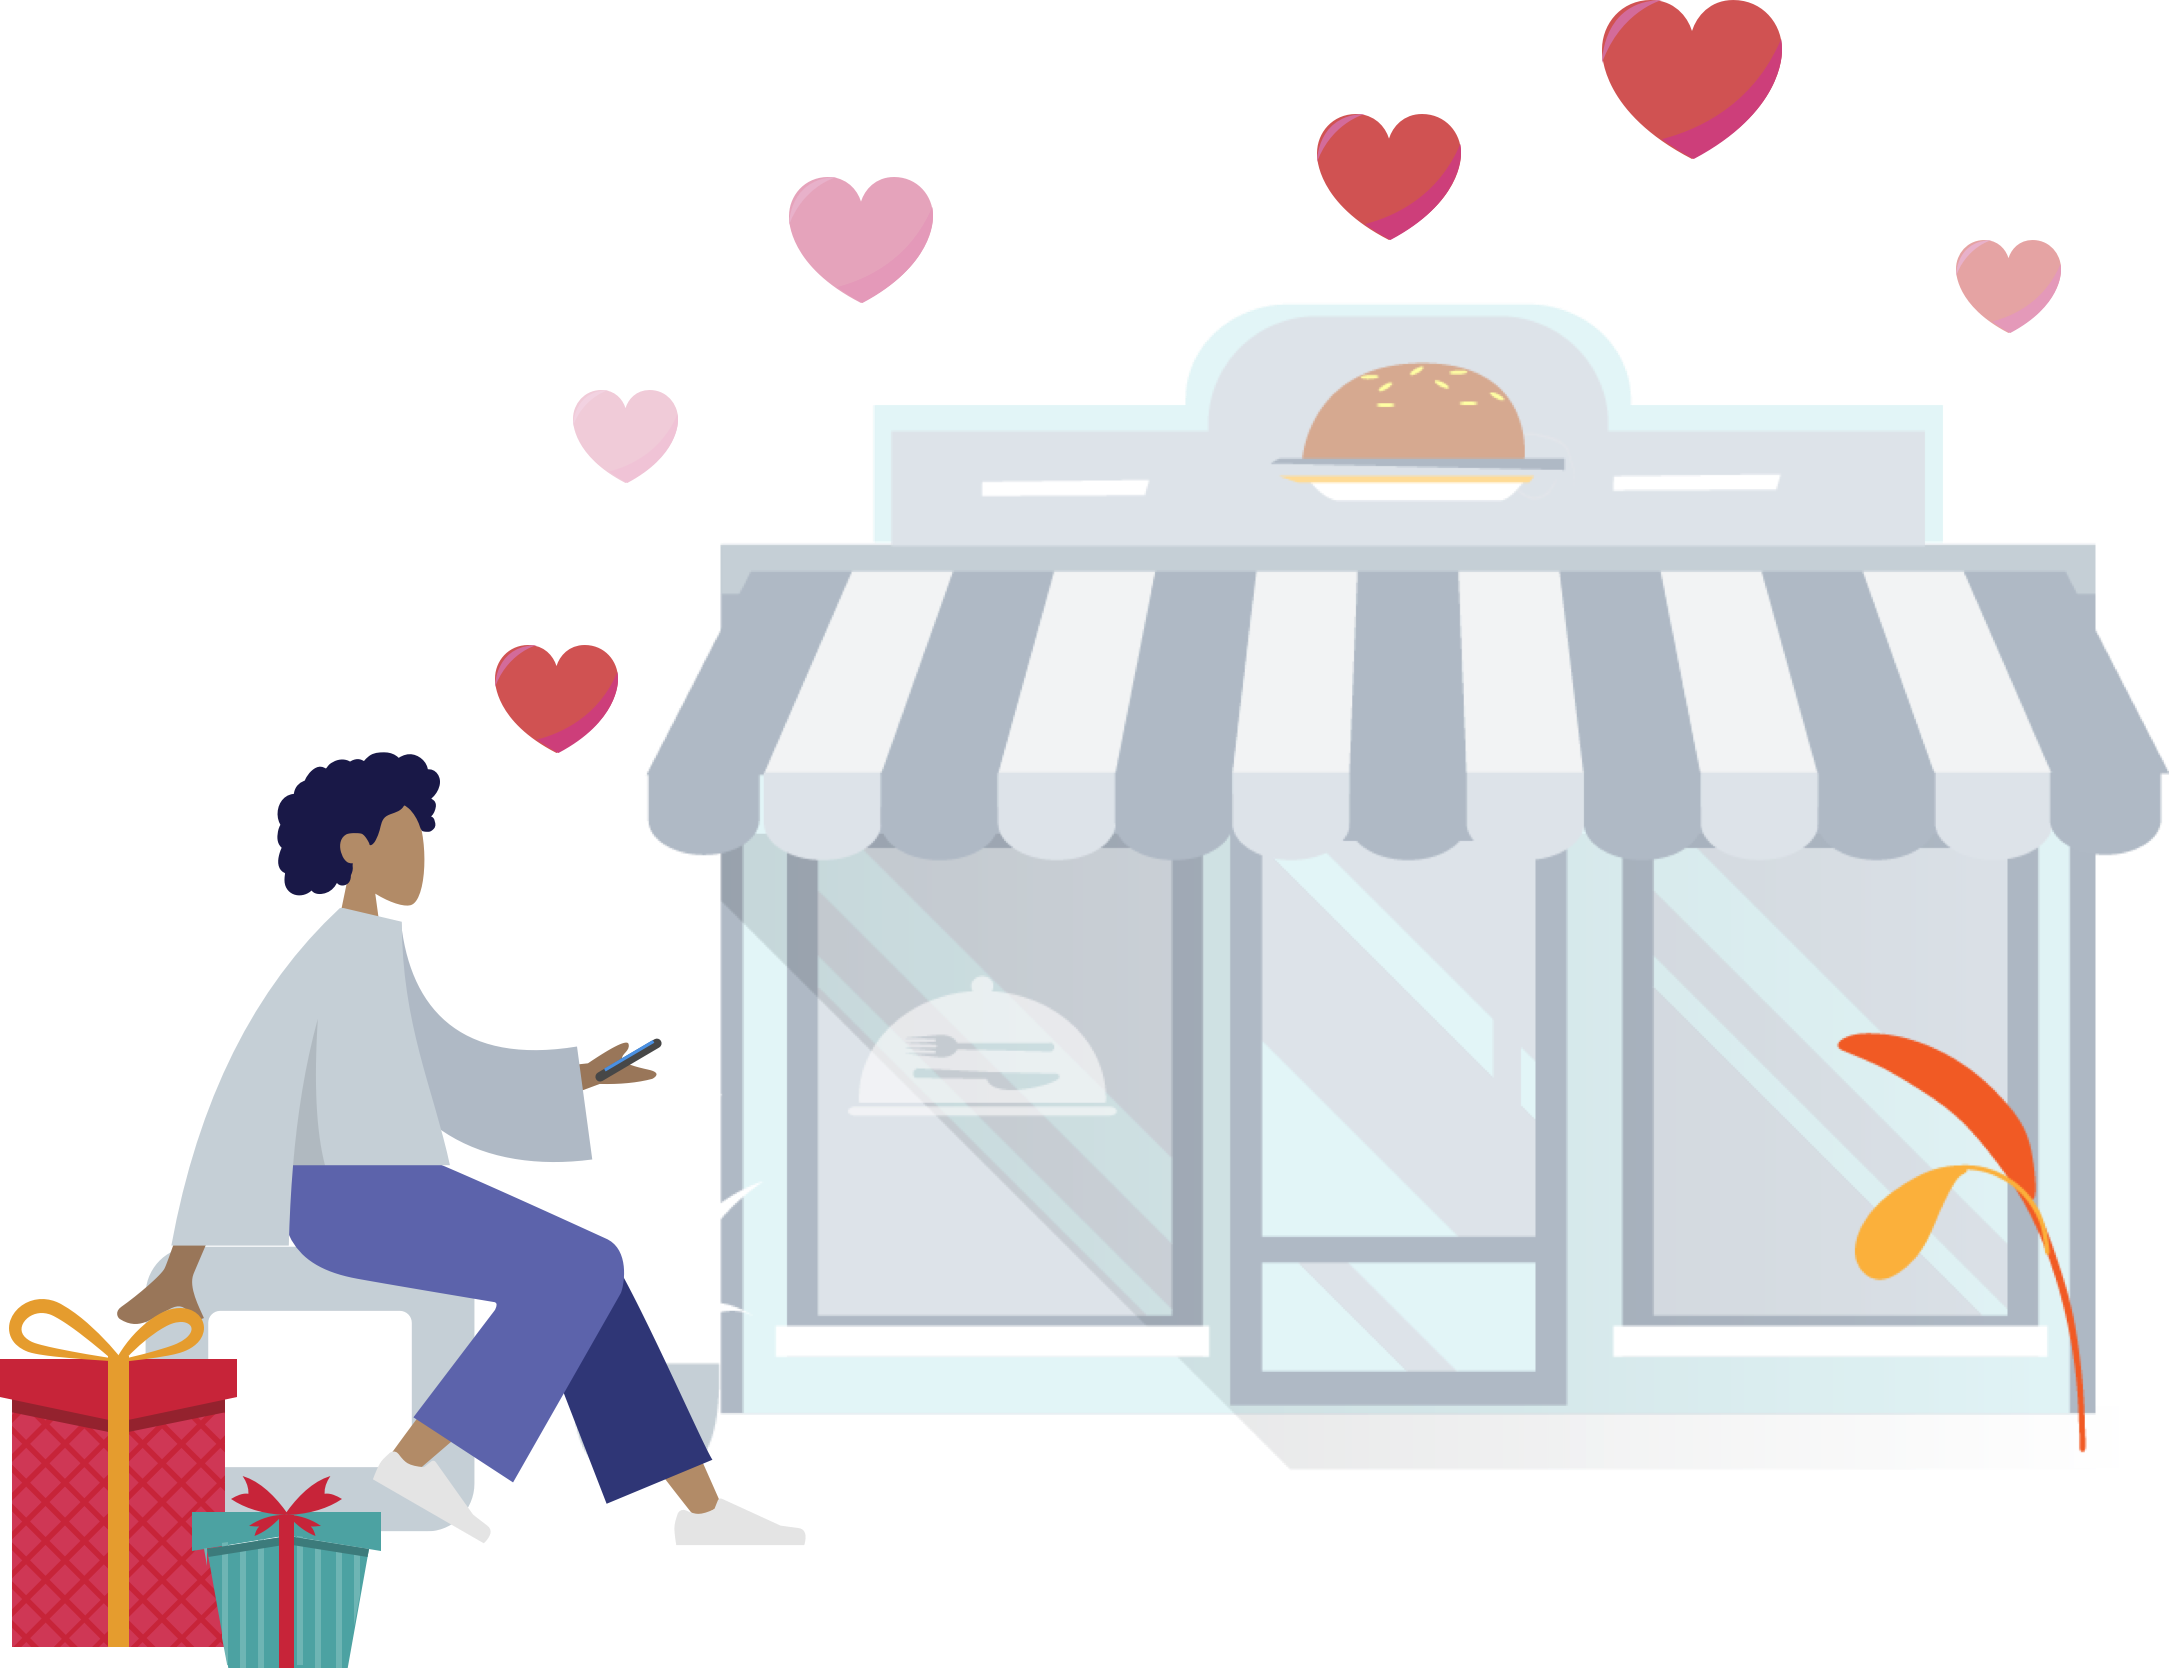 Illustration for customer loyalty program to increase retention by rewarding customers